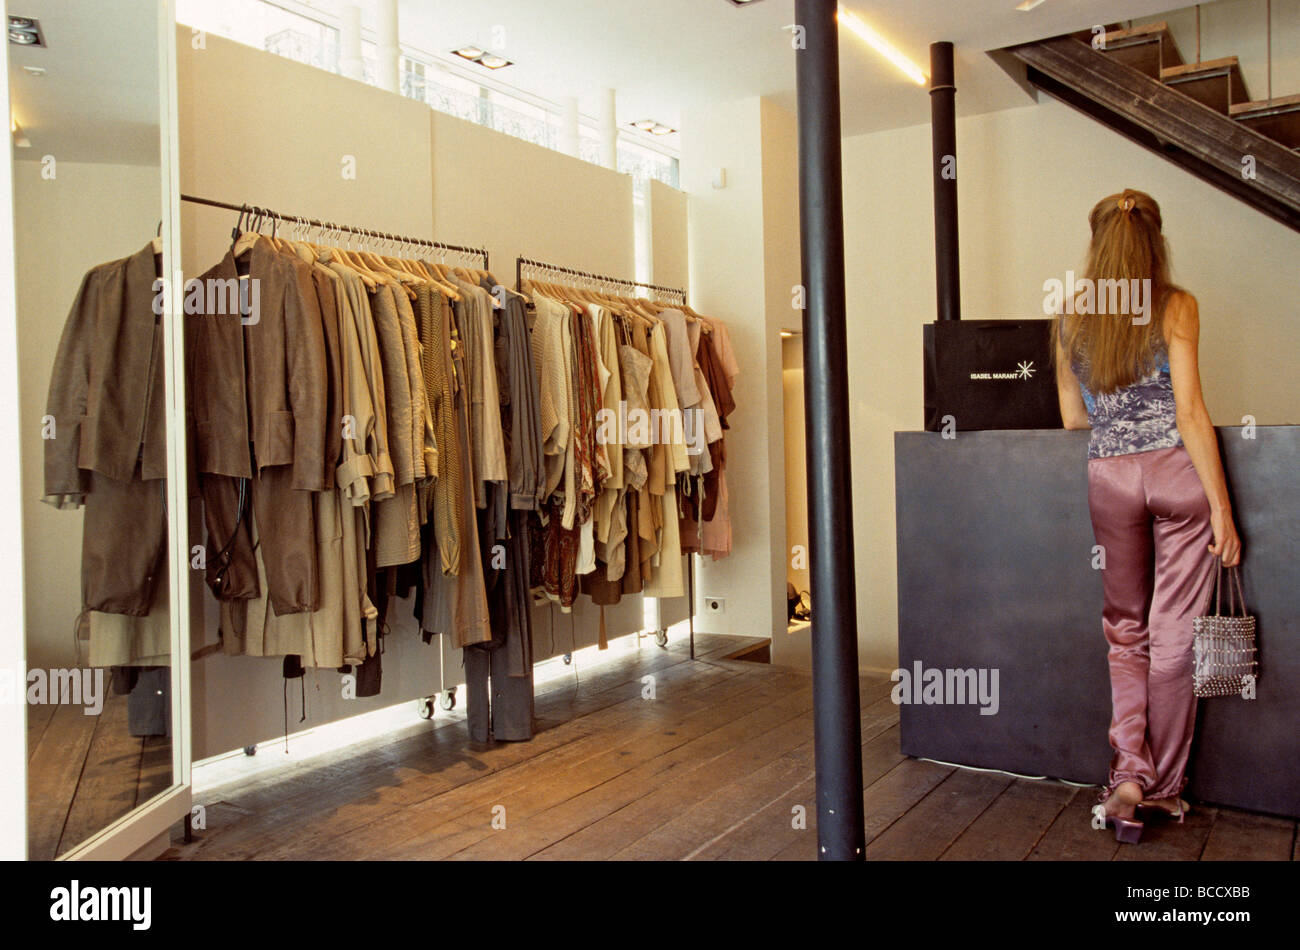 5368b120e2b France Clothes Store Stock Photos & France Clothes Store Stock ...